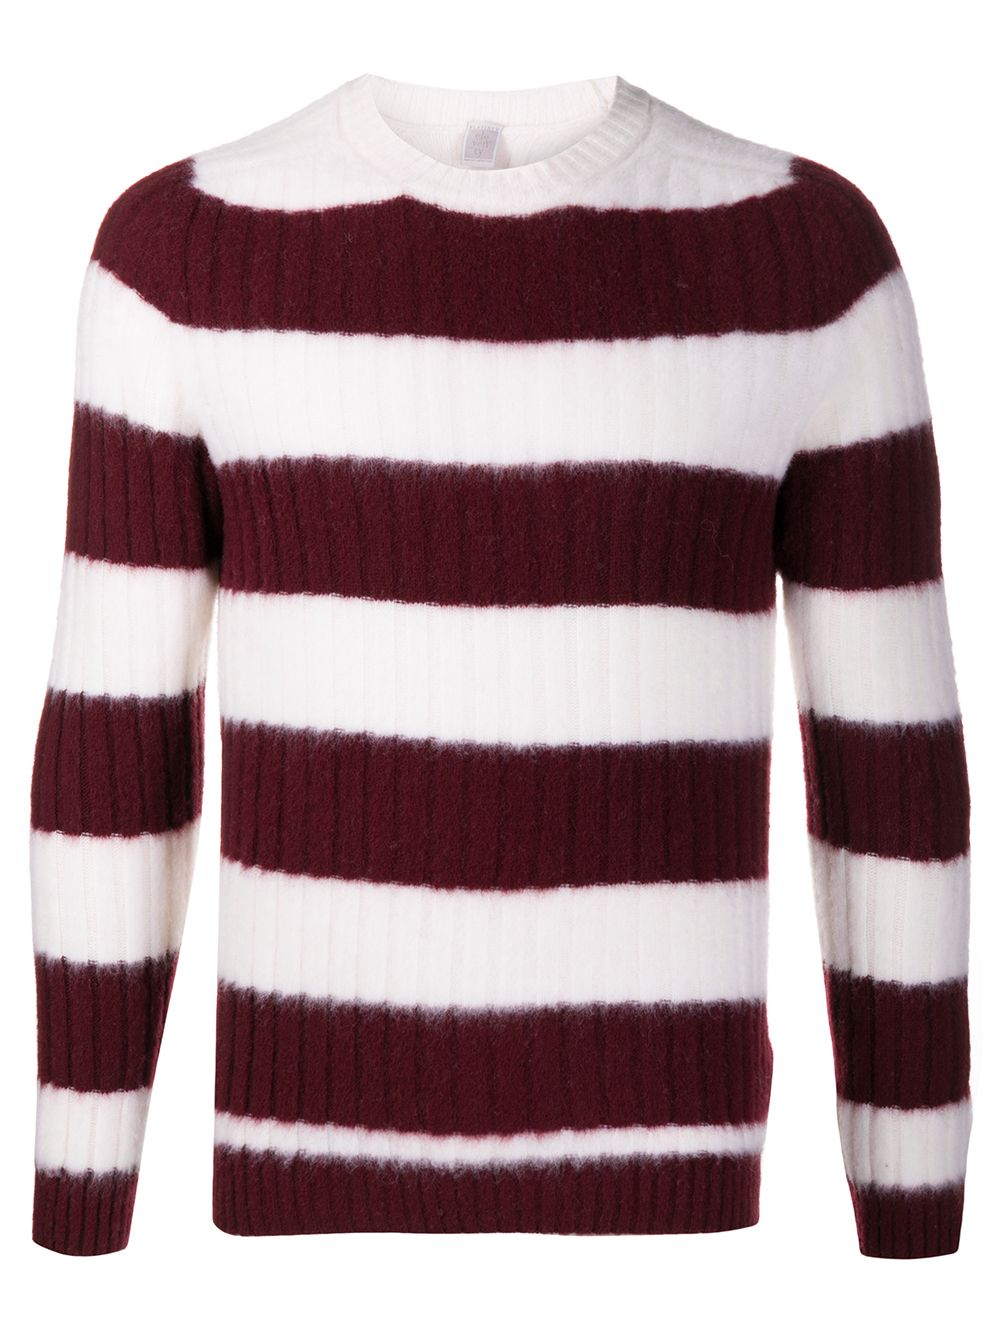 Bordeaux and white wool striped knit jumper   ELEVENTY |  | B76MAGB48-MAG0B06410-01